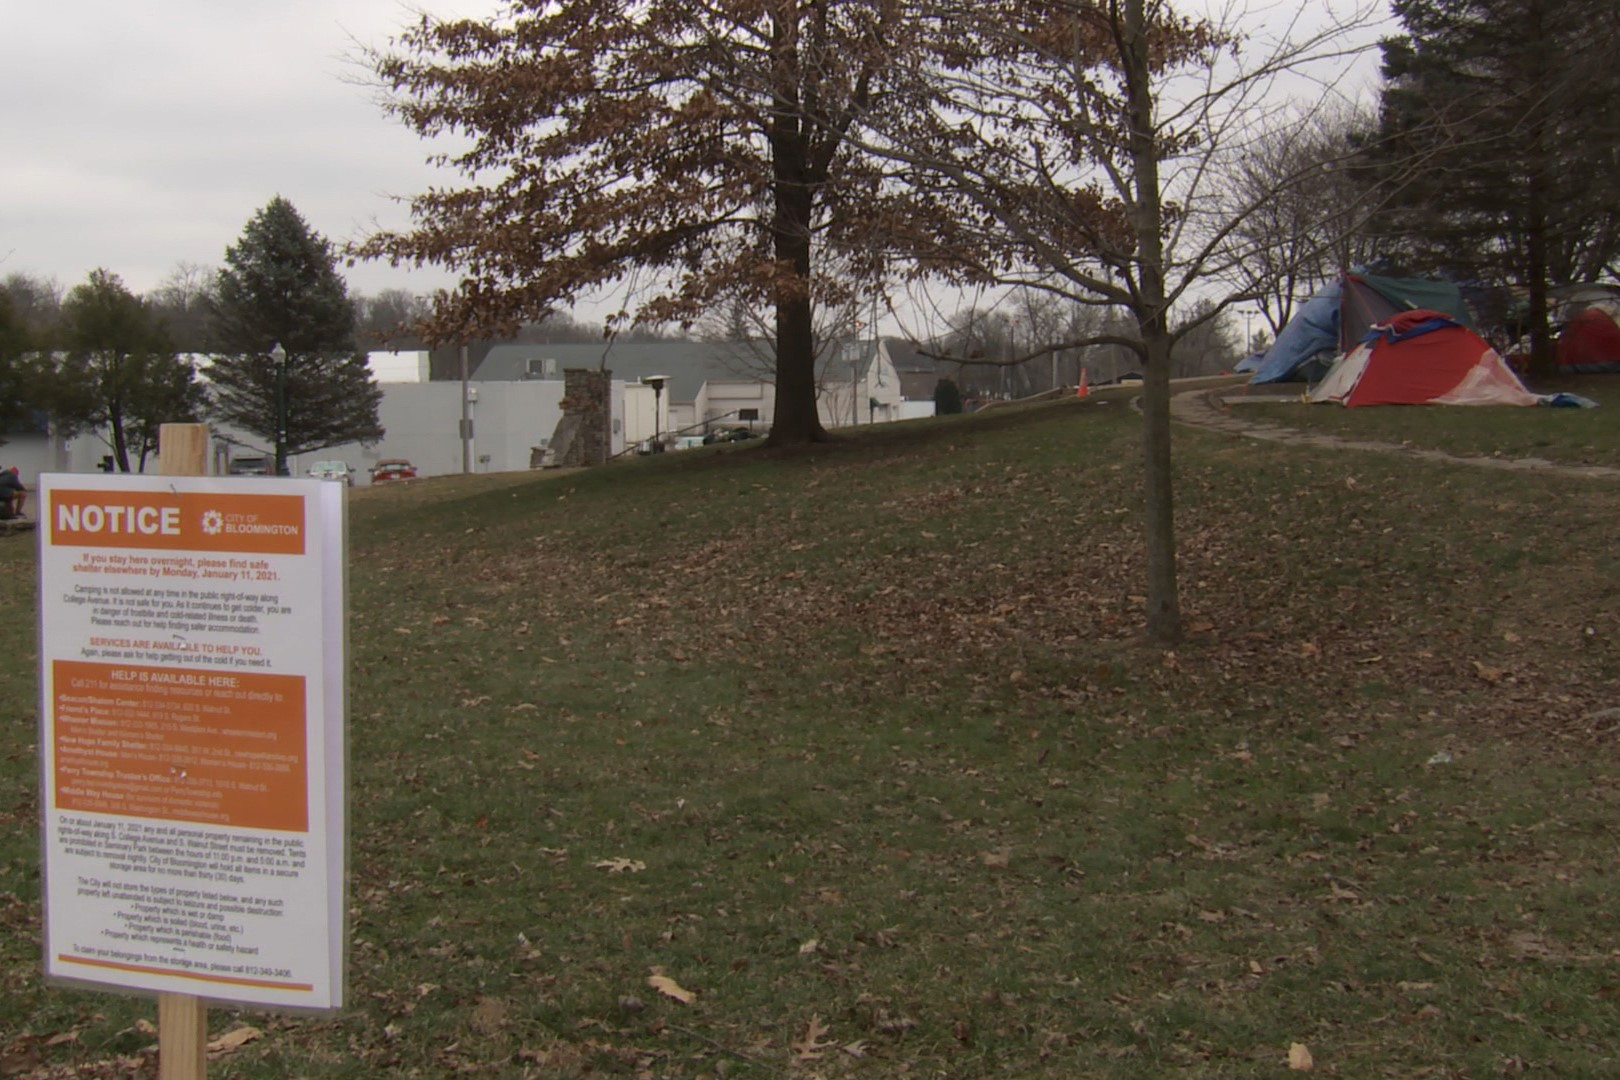 A photo of Bloomington's Seminary Park and a sign that says people must vacate.